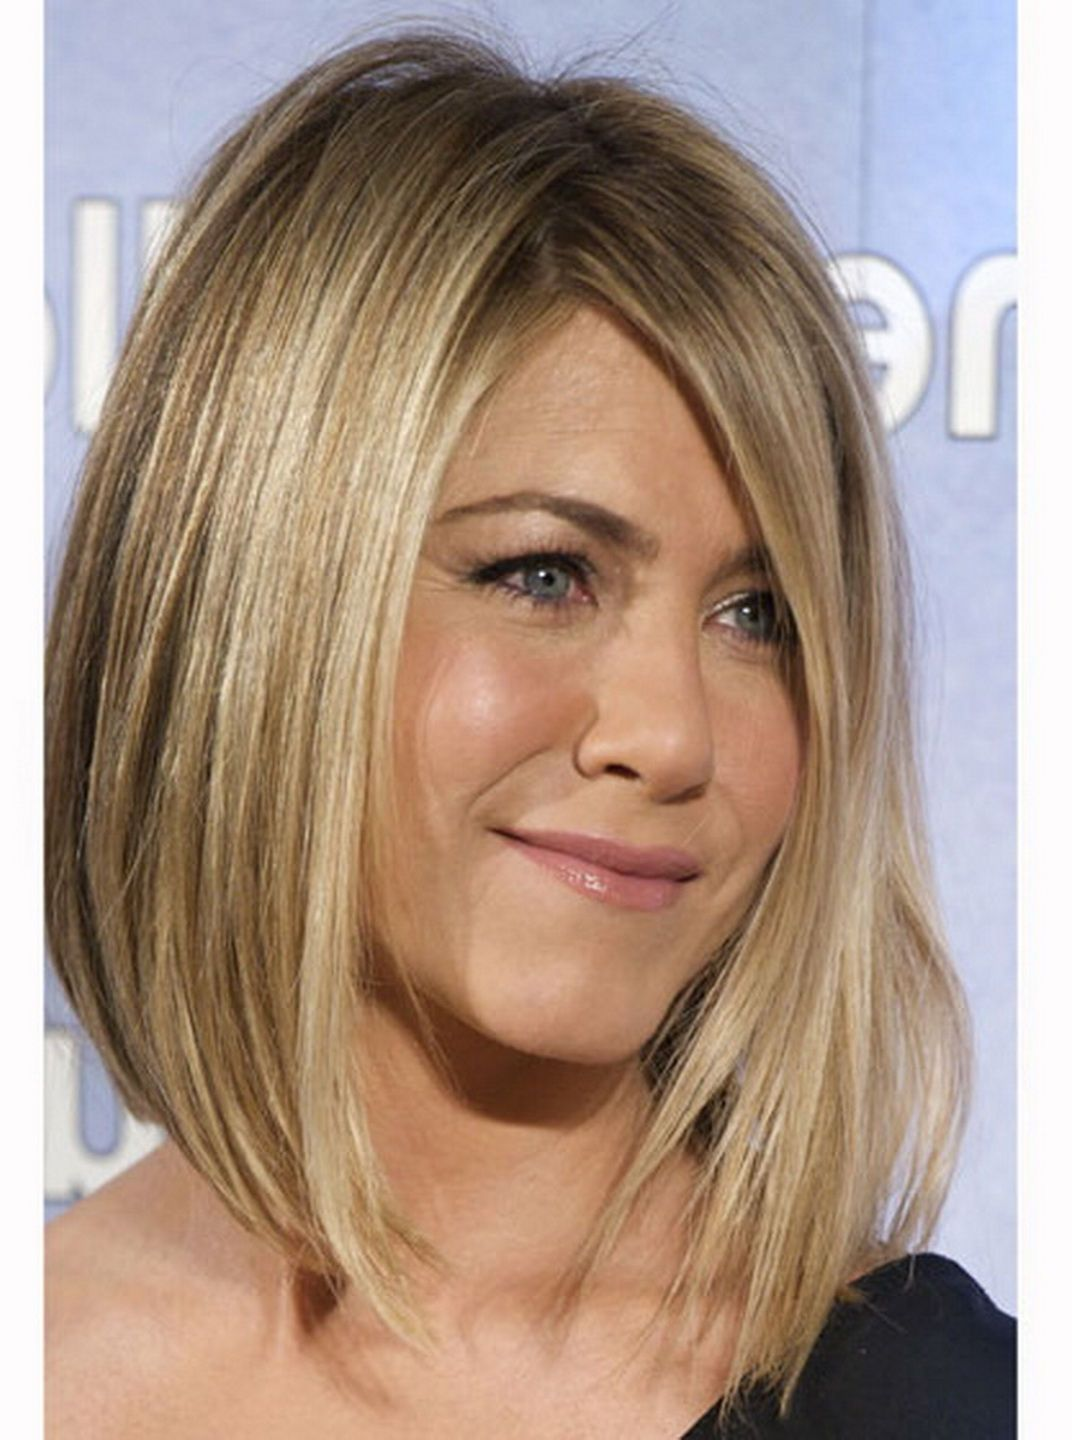 medium bob hairstyles | hair medium pics bob hairstyles jennifer